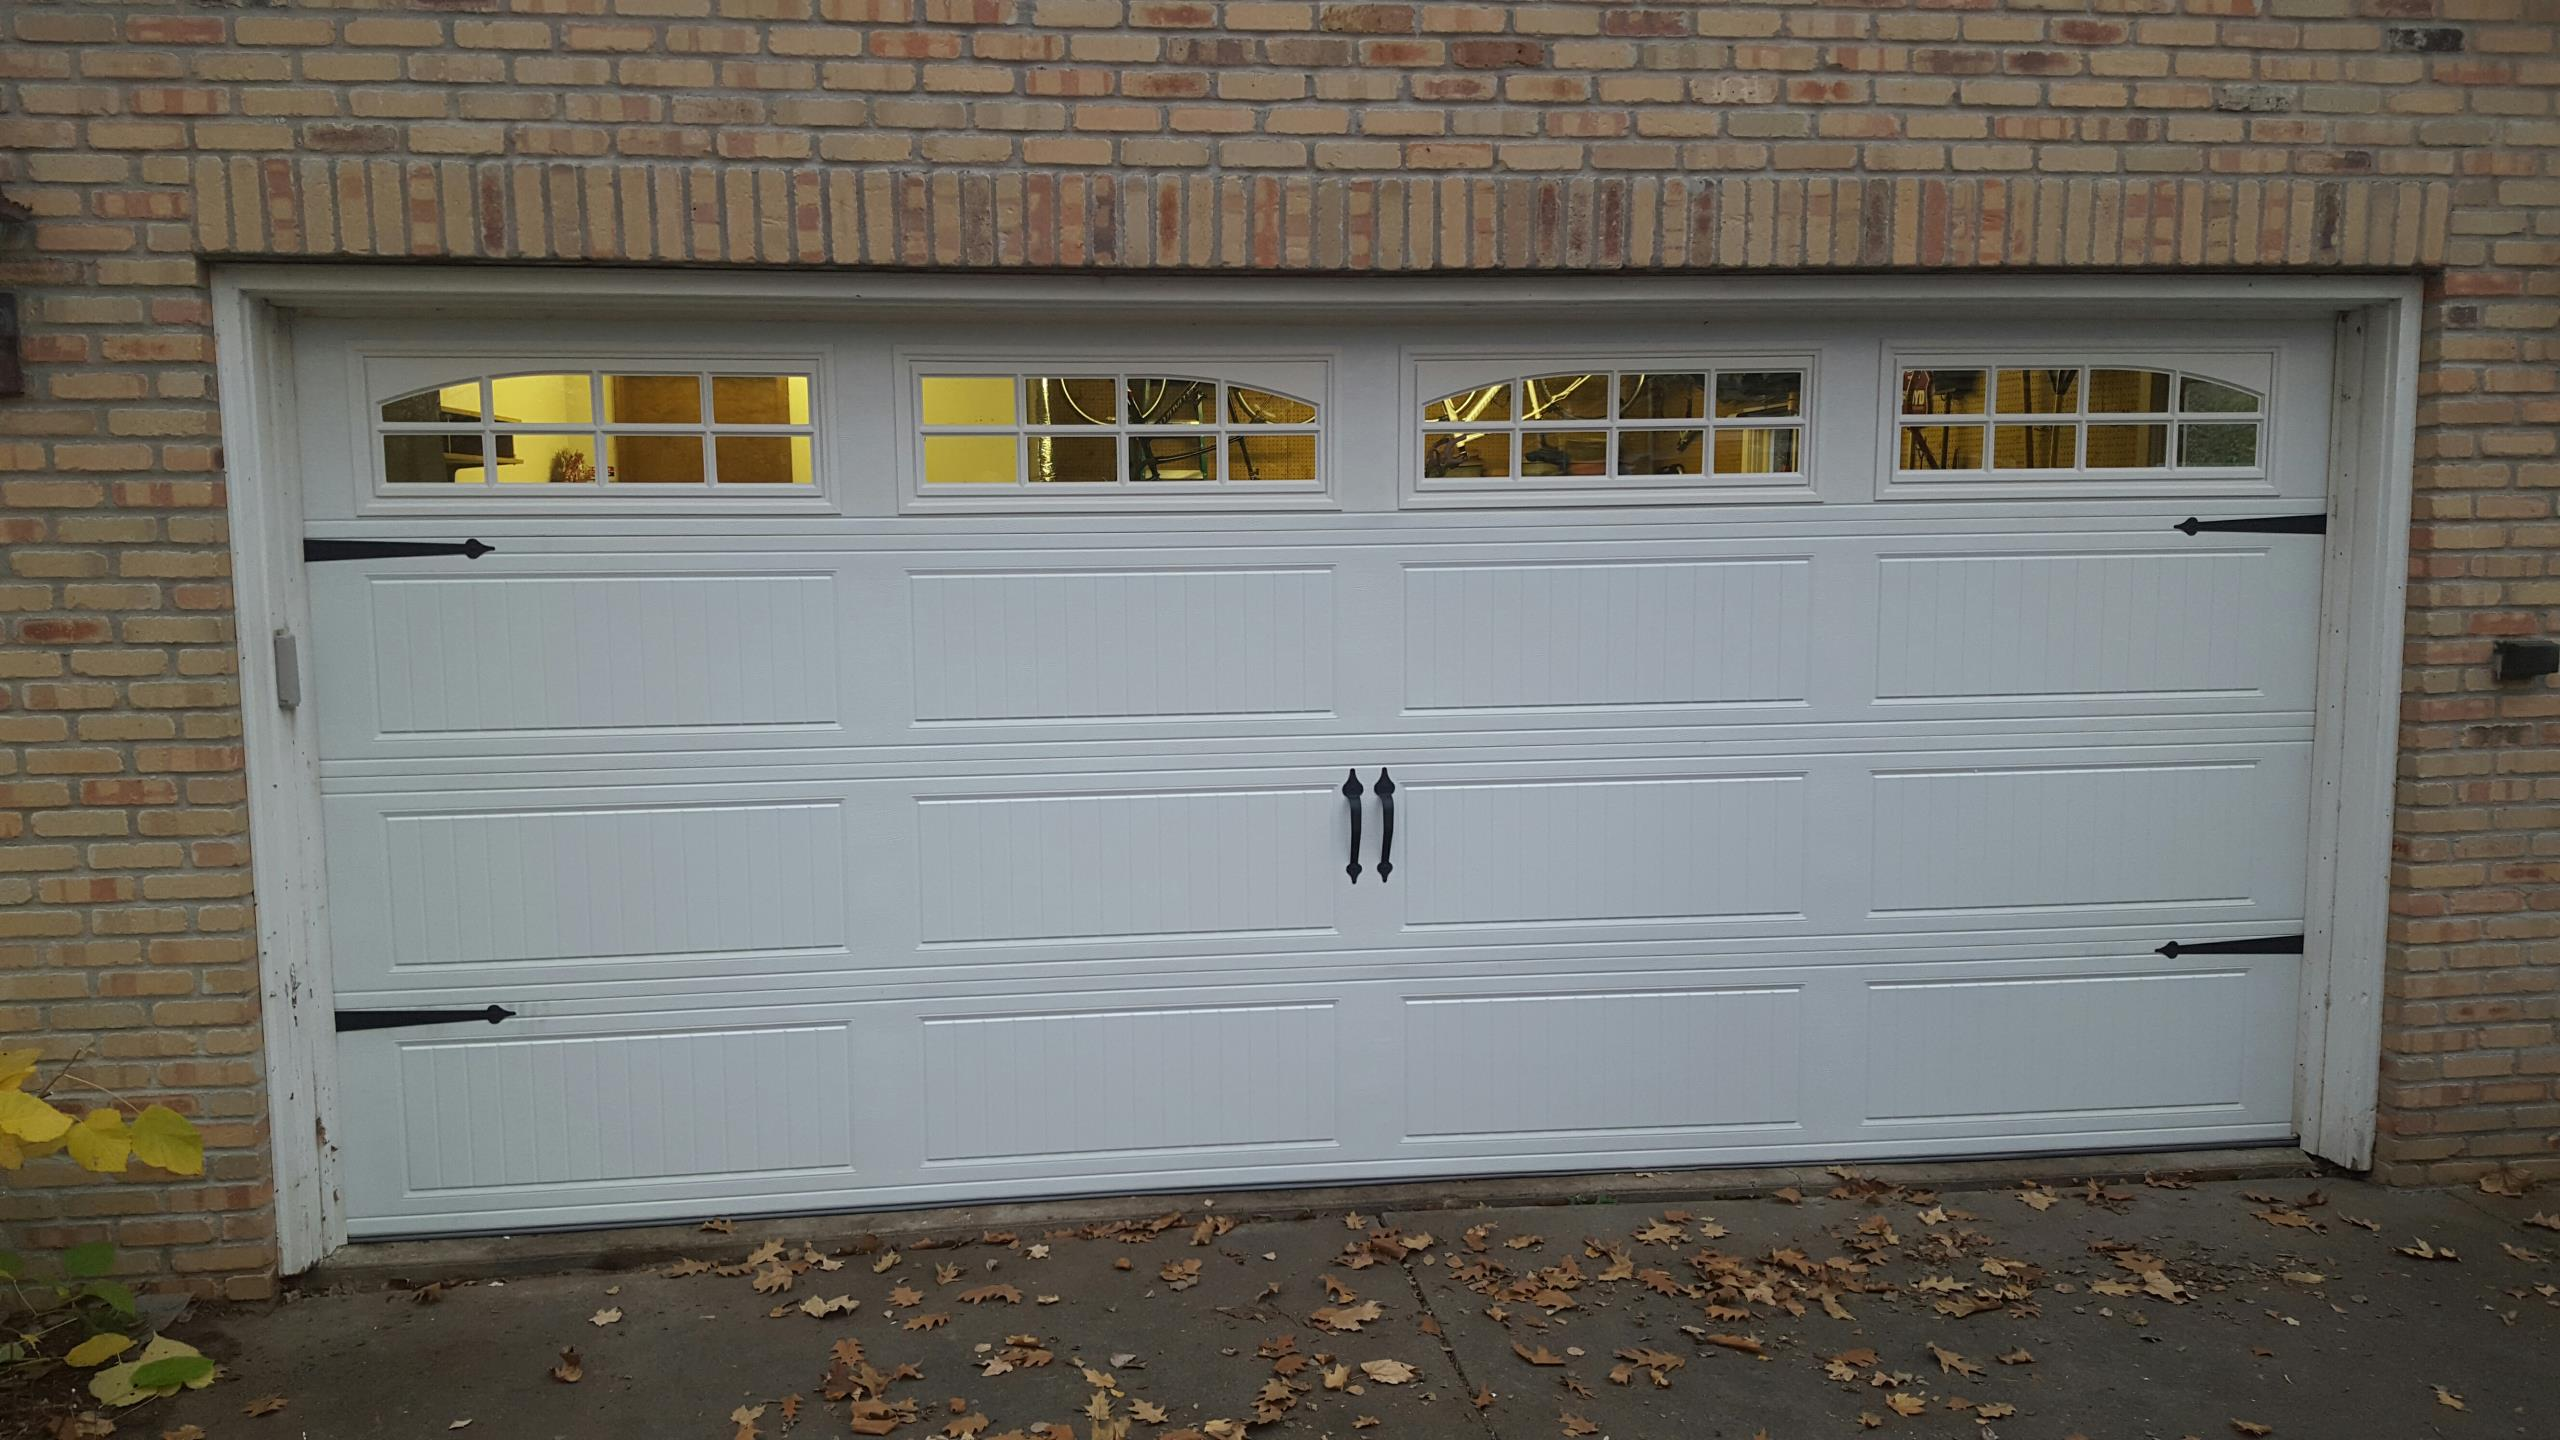 North Oaks, MN - Replaced a door and 8355 liftmaster